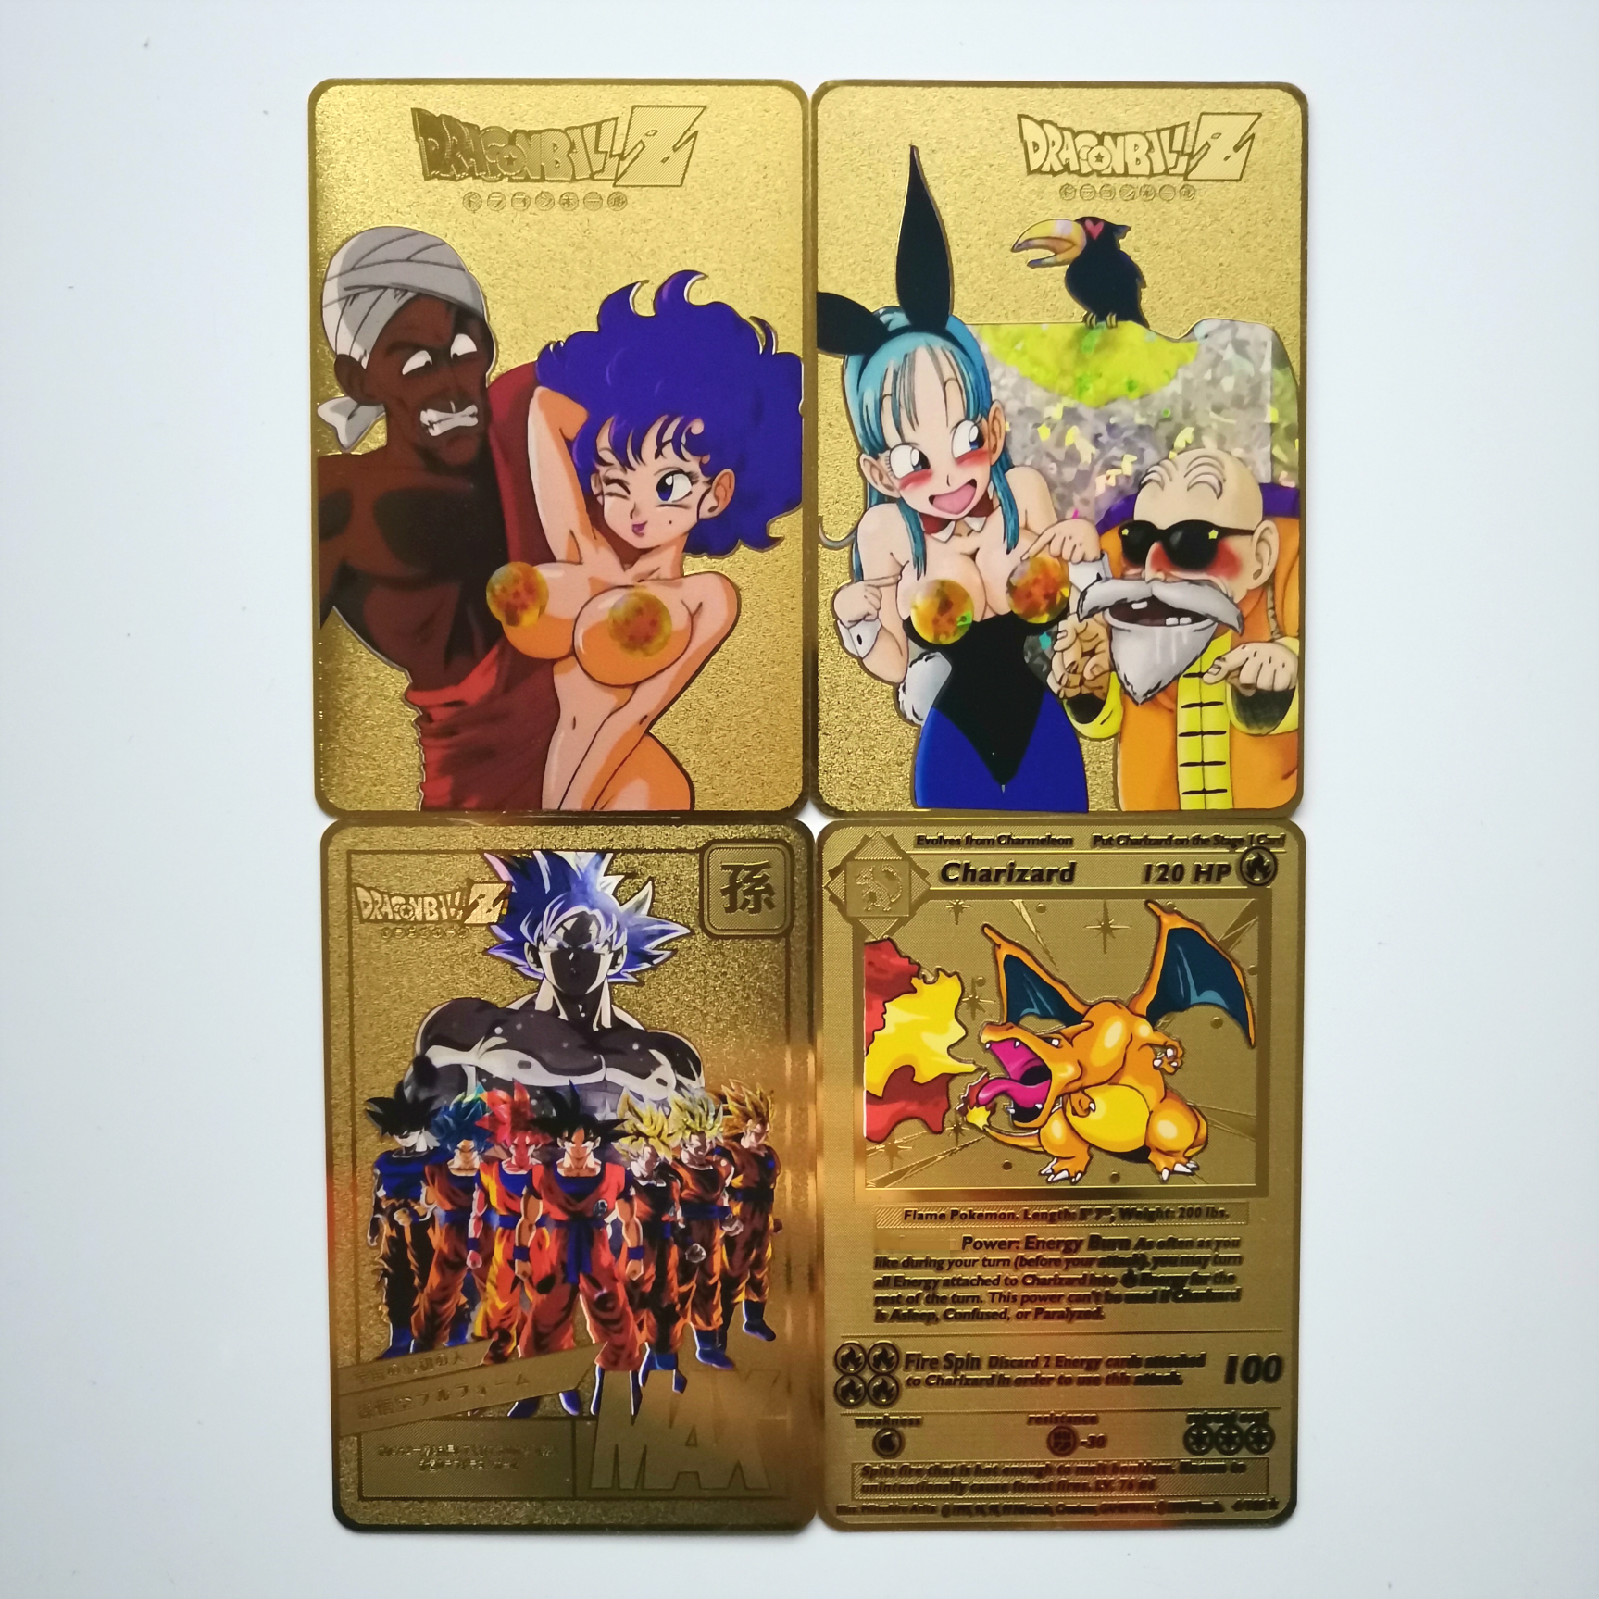 4 Styles Gold Metal Card Super Dragon Ball Z Single Heroes Battle Ultra Instinct Goku Game Collection Anime Cards